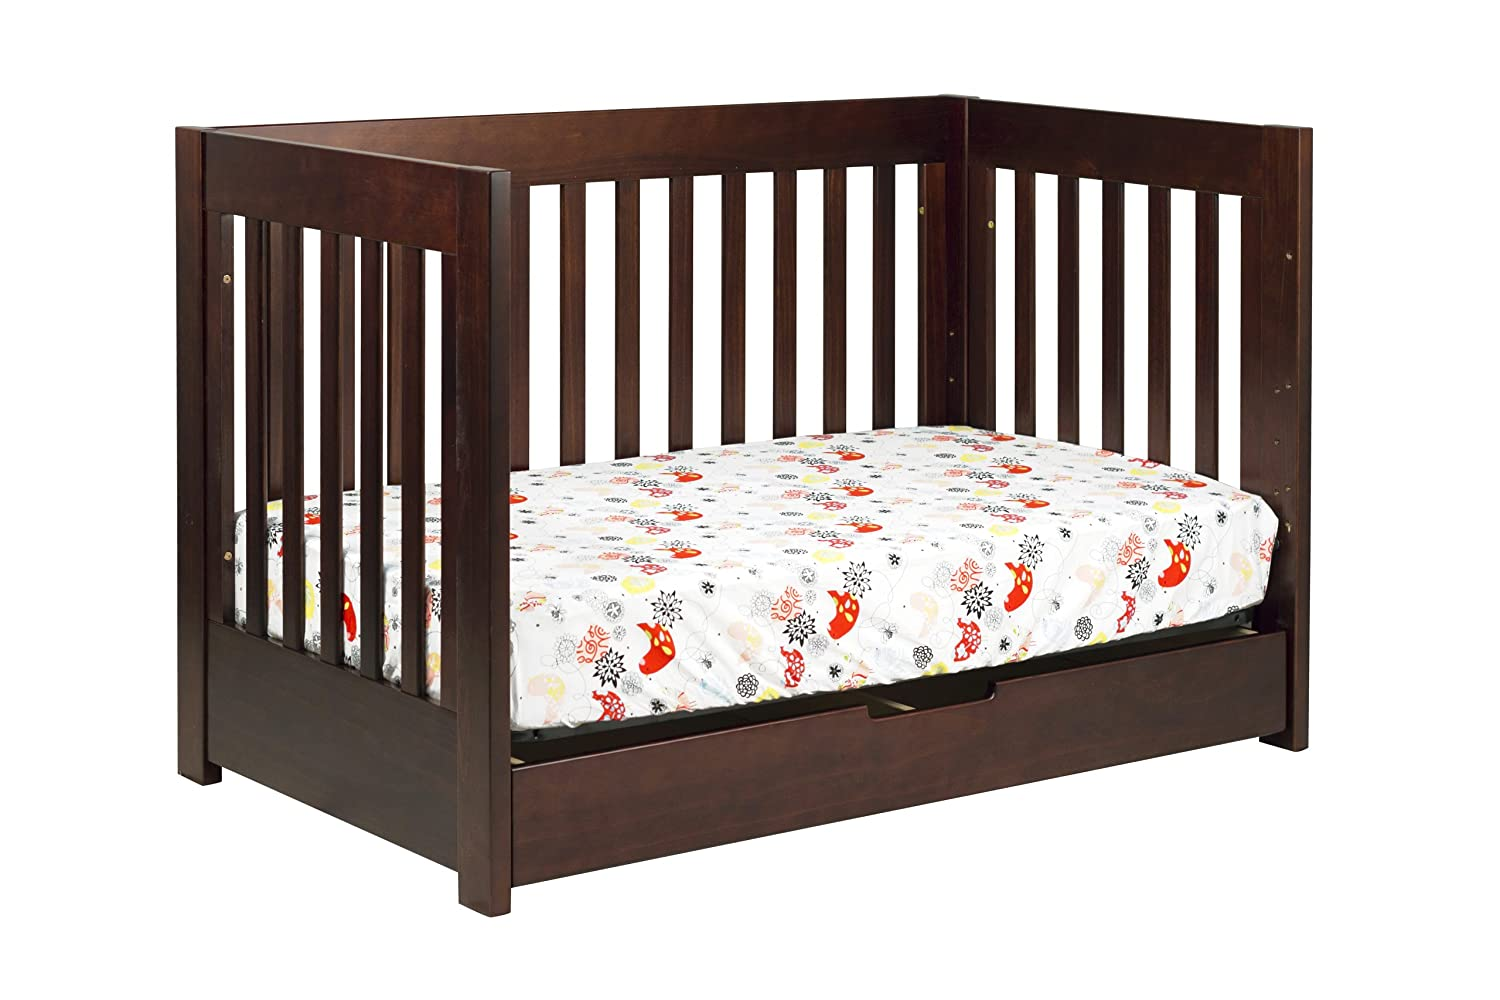 Toddler bed rails for convertible cribs - Amazon Com Babyletto Mercer 3 In 1 Convertible Crib With Toddler Bed Conversion Kit Espresso Baby